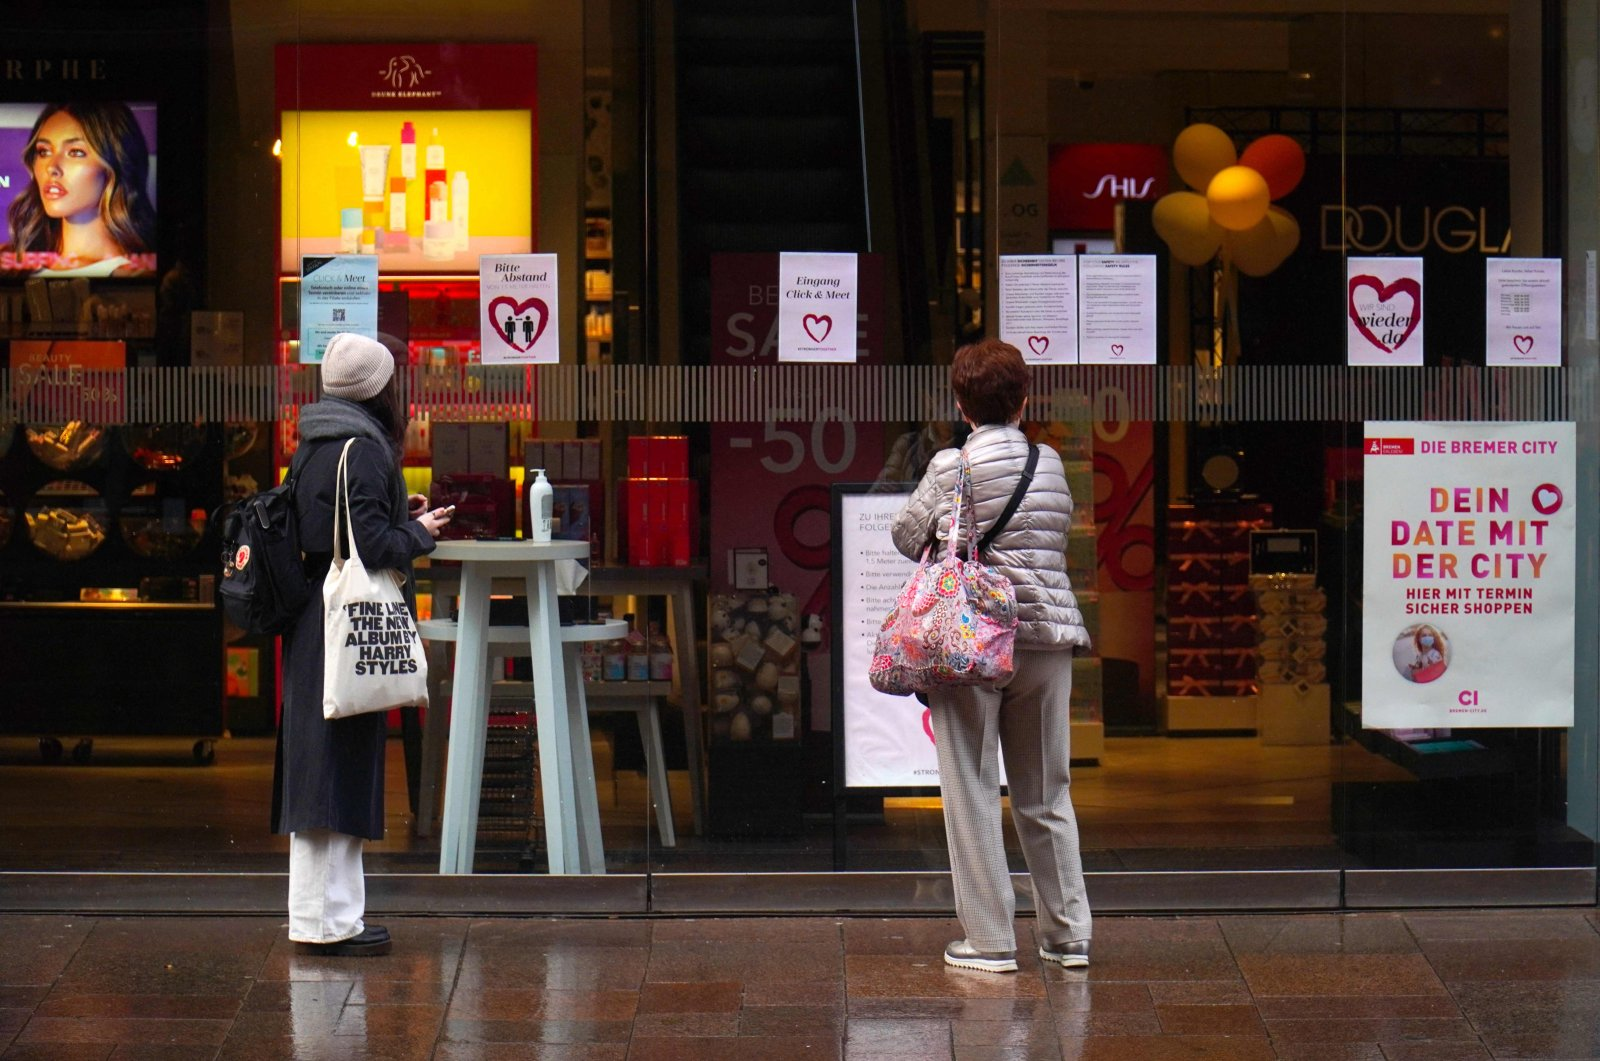 """Customers stand in front of the entrance of a shop with notes for """"click and meet"""" on a shopping street, during the ongoing coronavirus (COVID-19) pandemic, in the center of Bremen, Germany, on March 15, 2021. (AFP Photo)"""